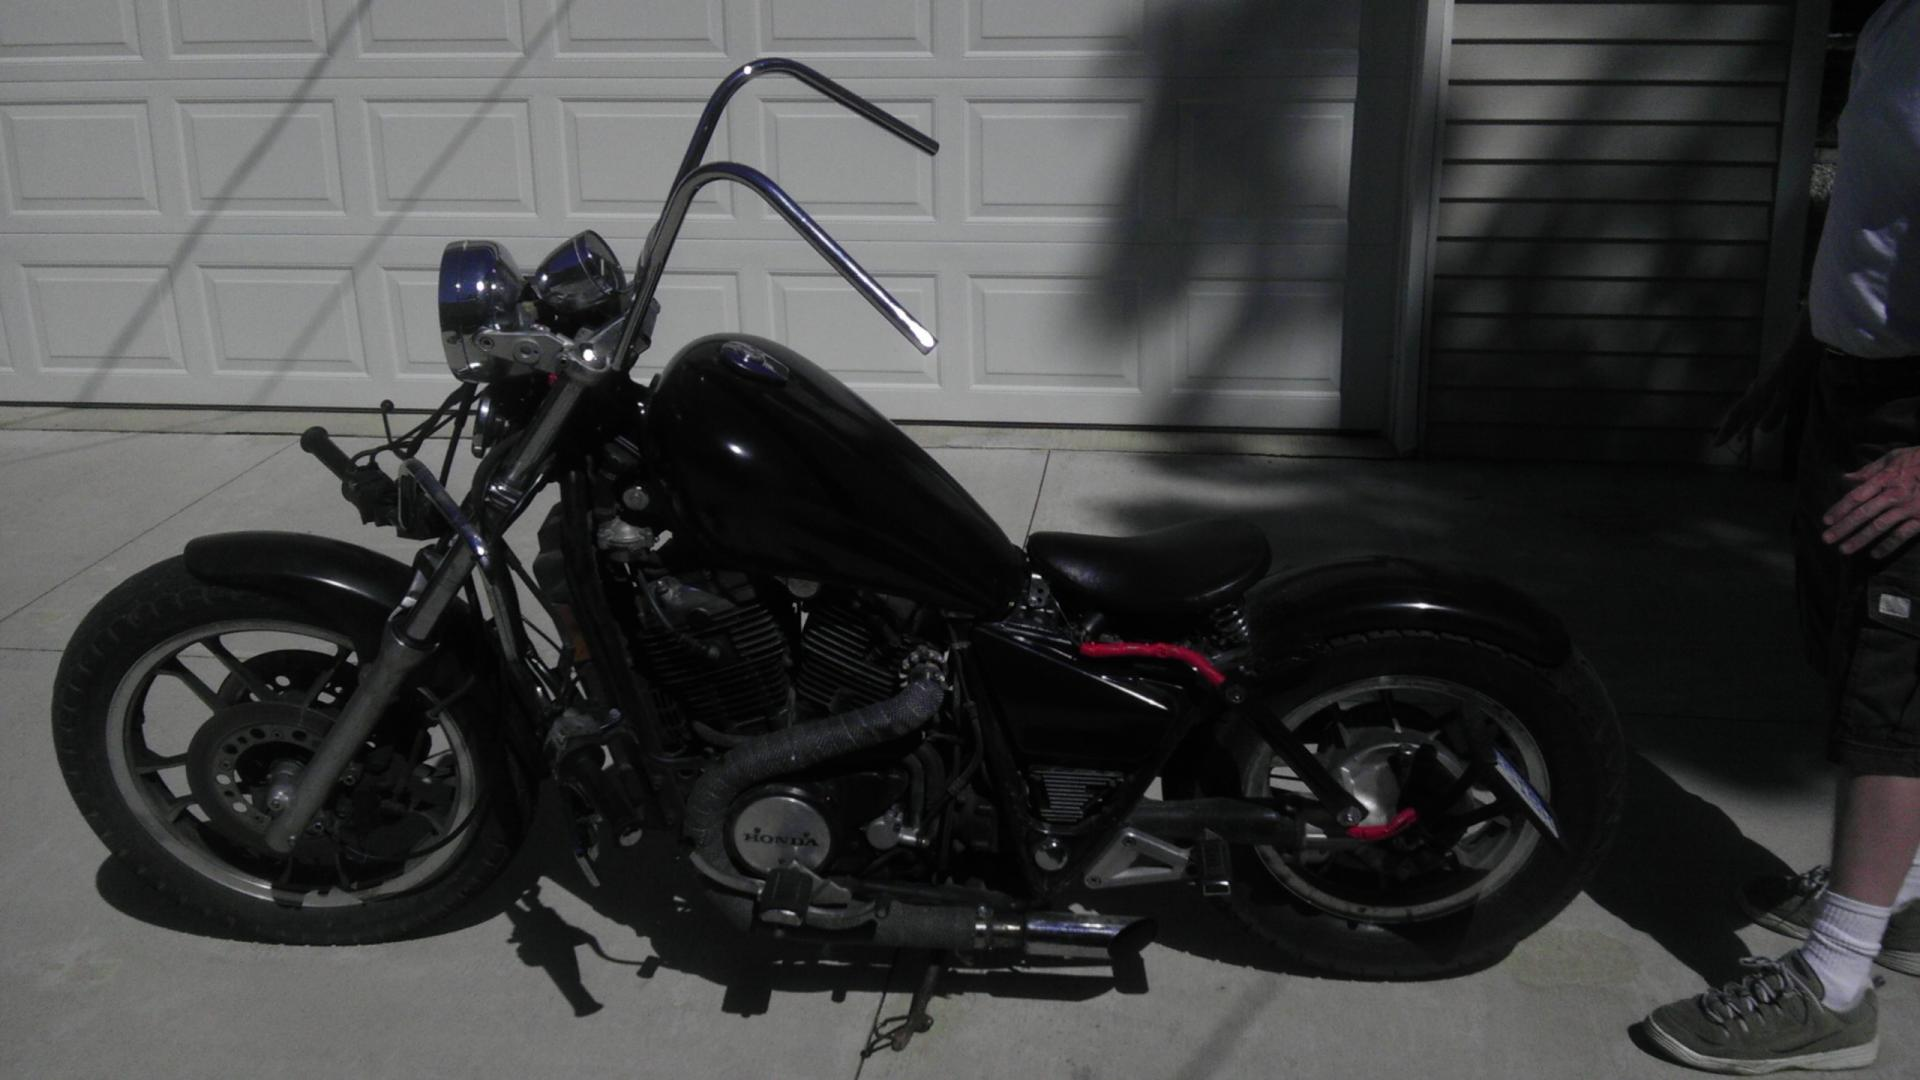 New to Shadow net-chopper-handlebars-2-2-.jpg